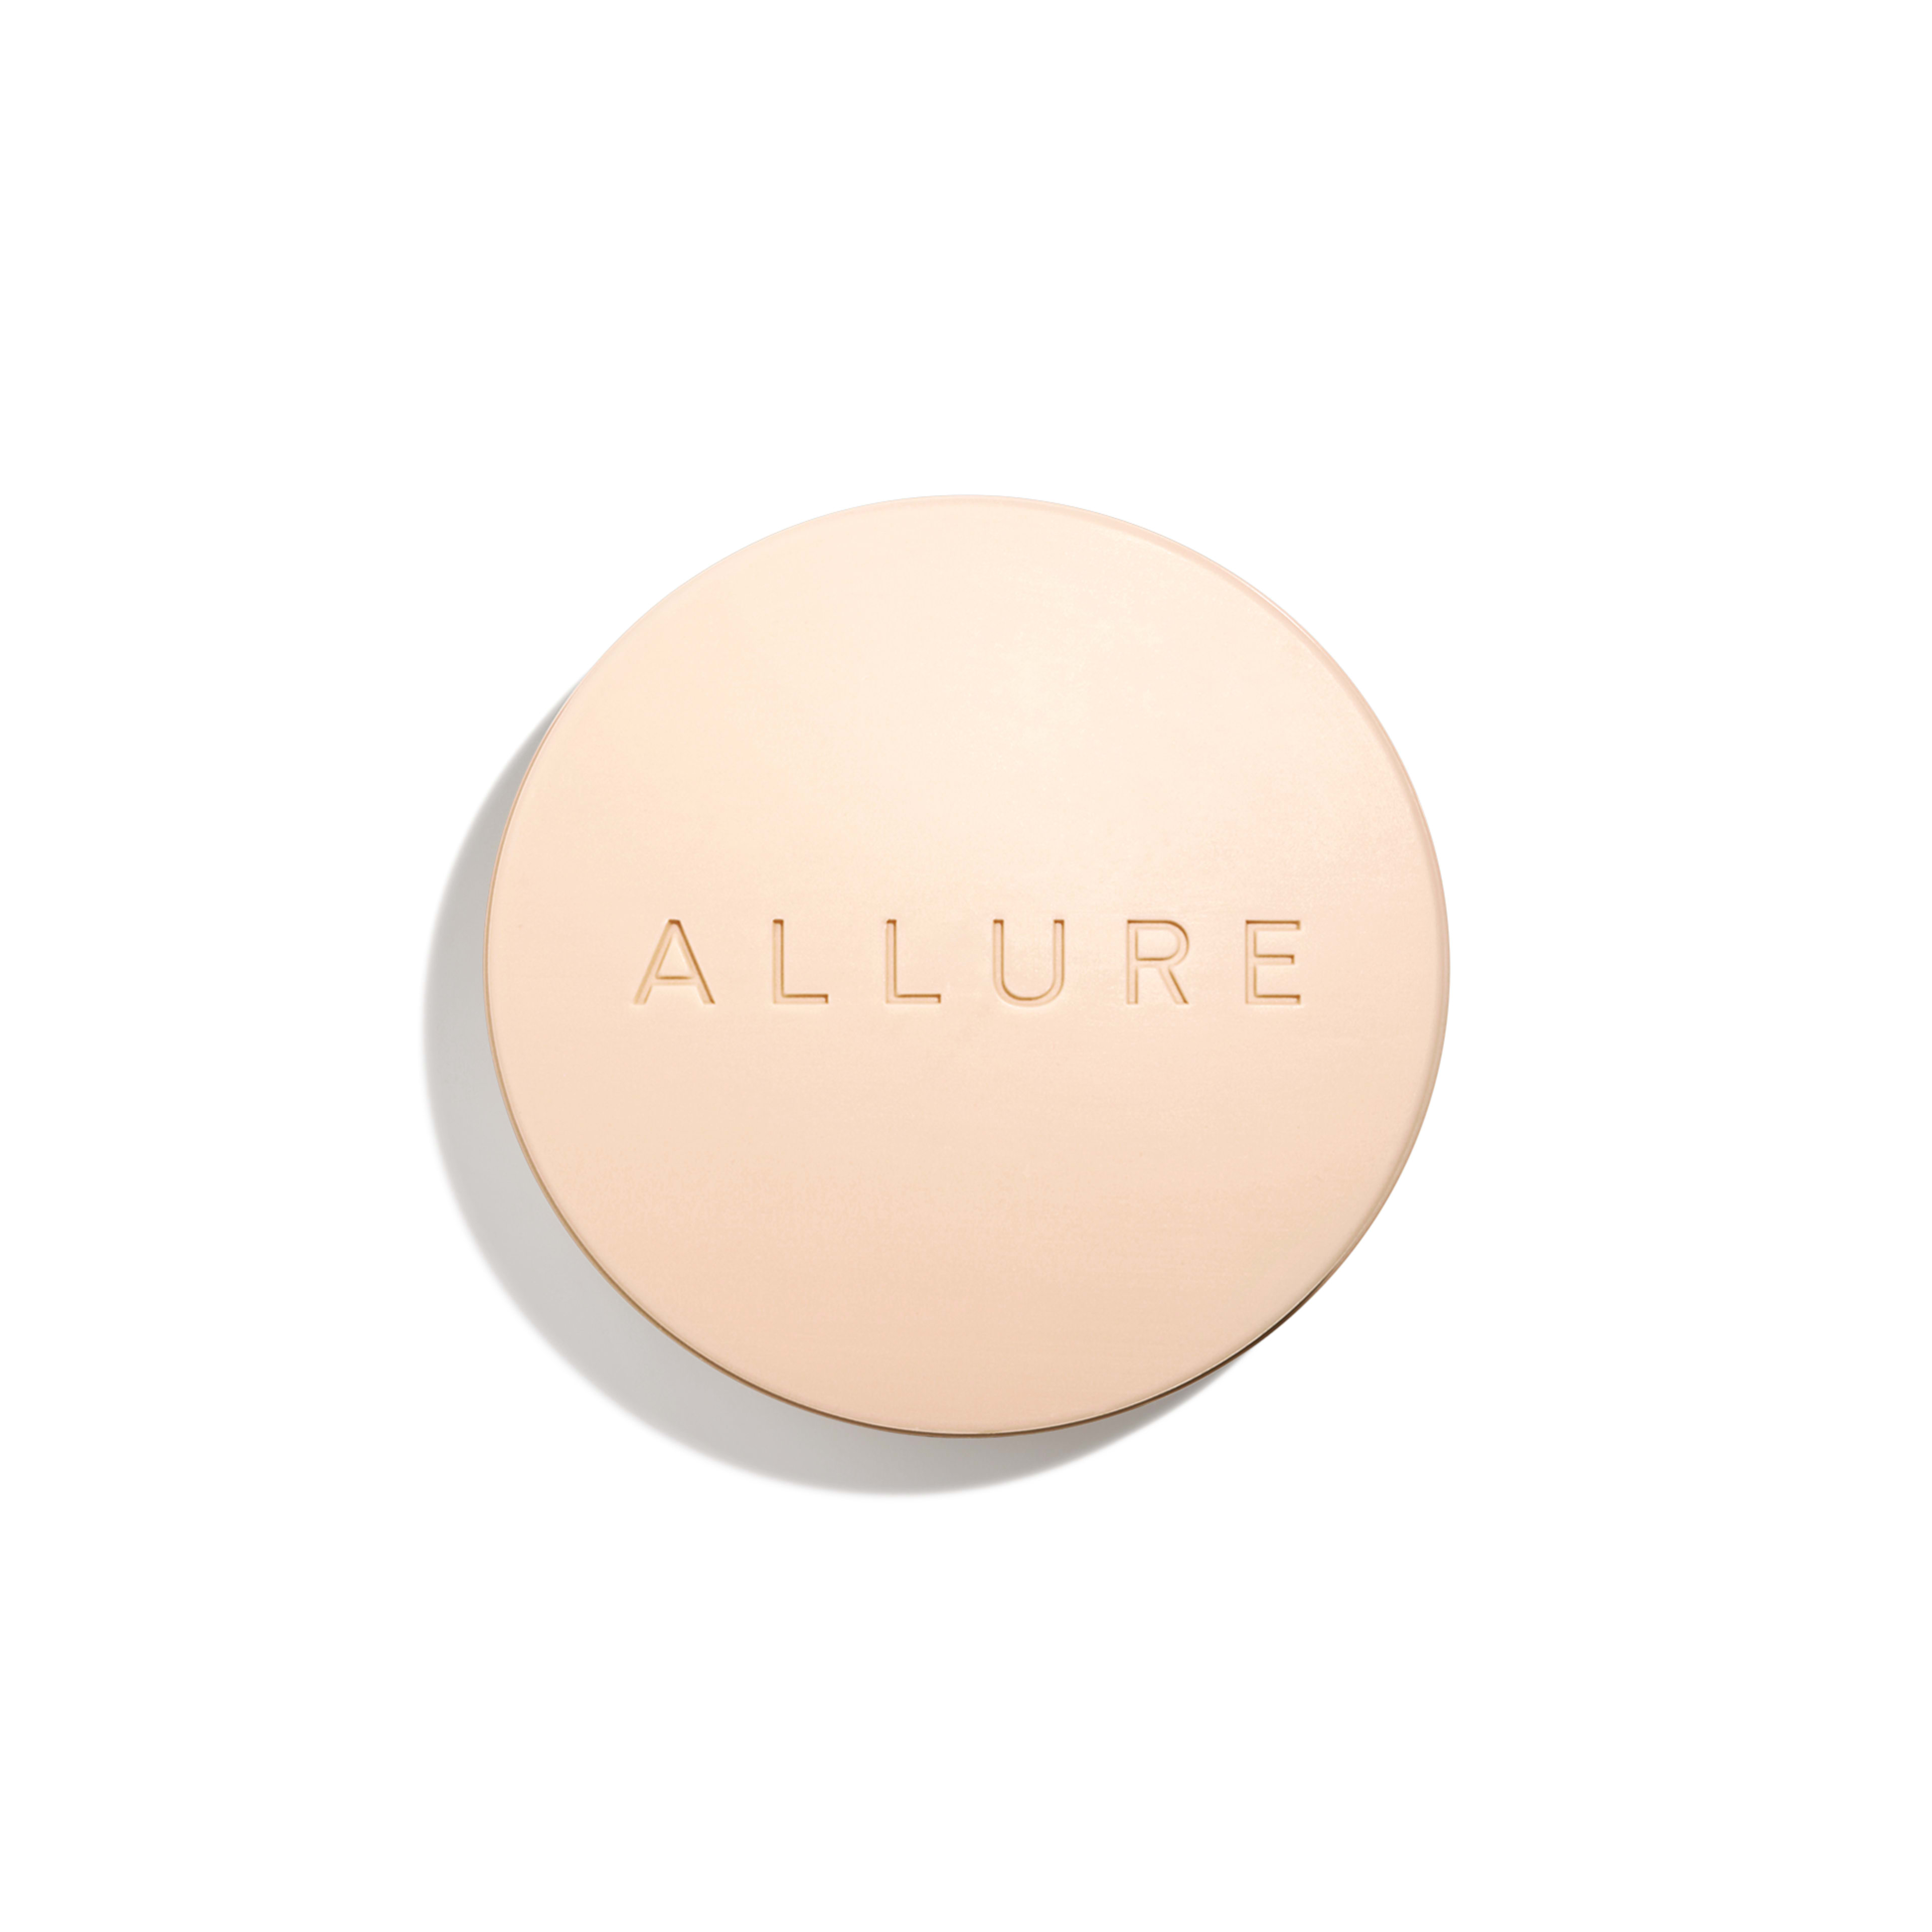 ALLURE - fragrance - 150g - Default view